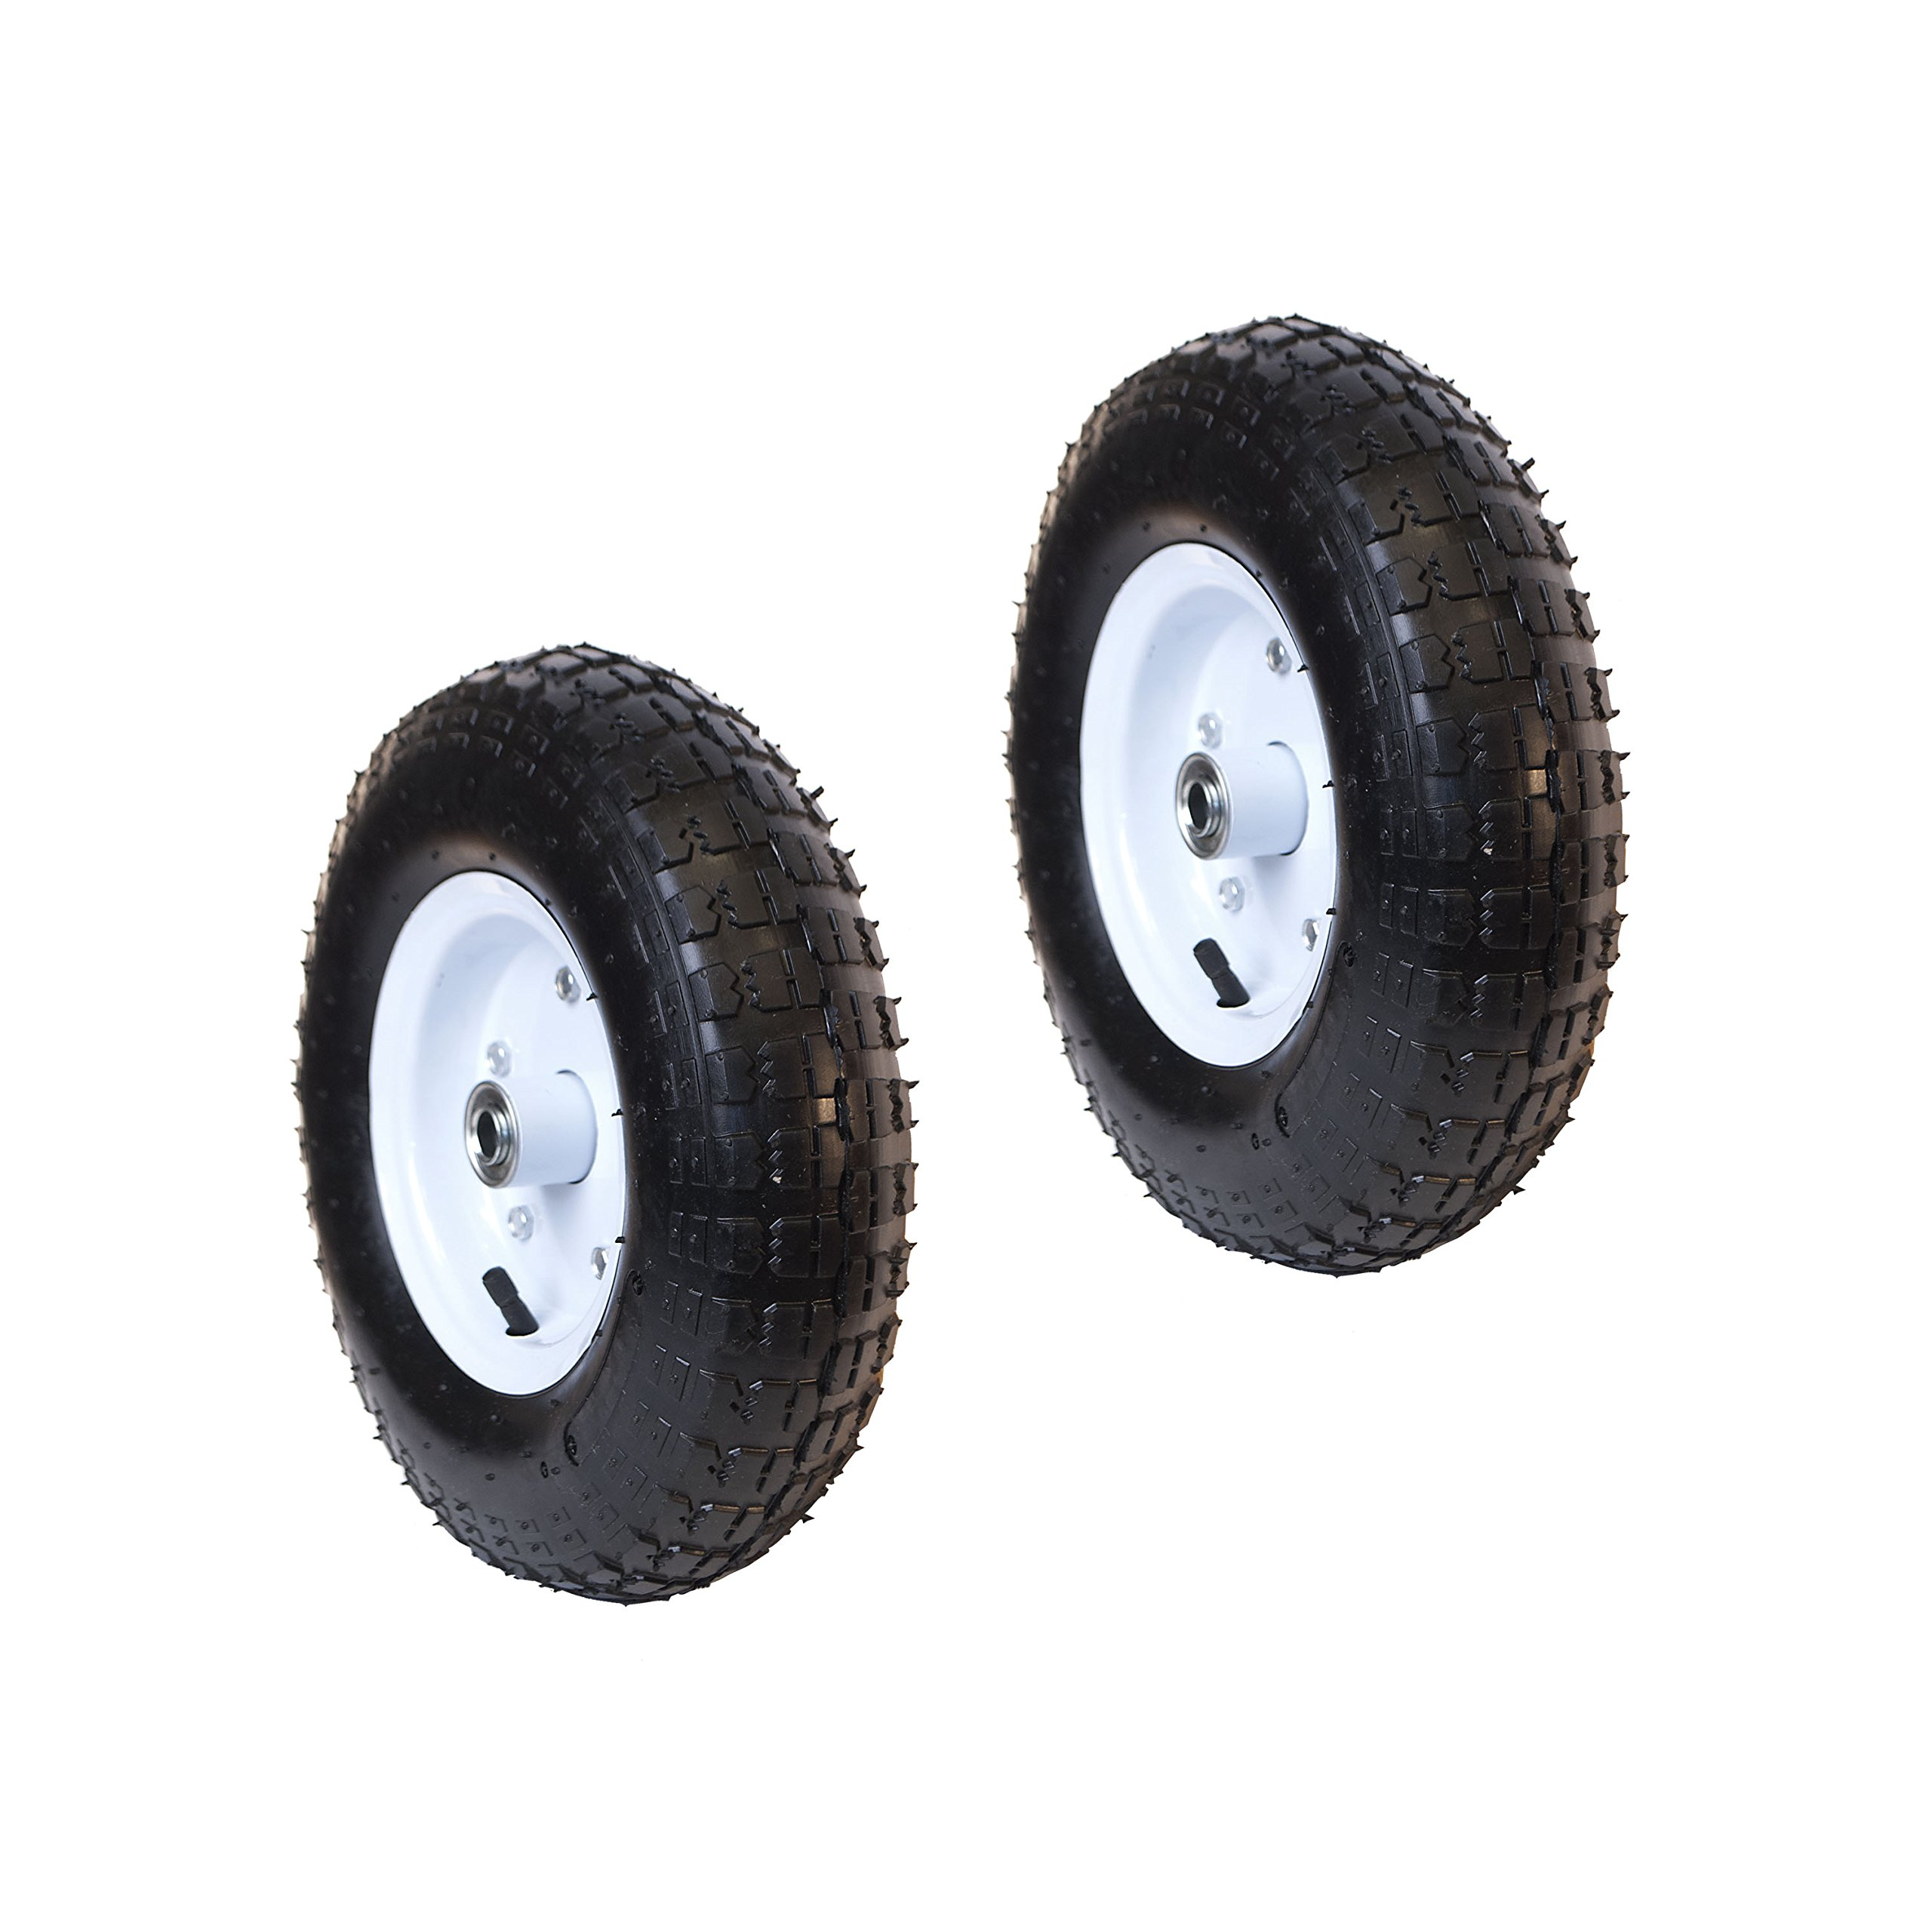 Cheap 16 Inch Rim Tire Sizes find 16 Inch Rim Tire Sizes deals on